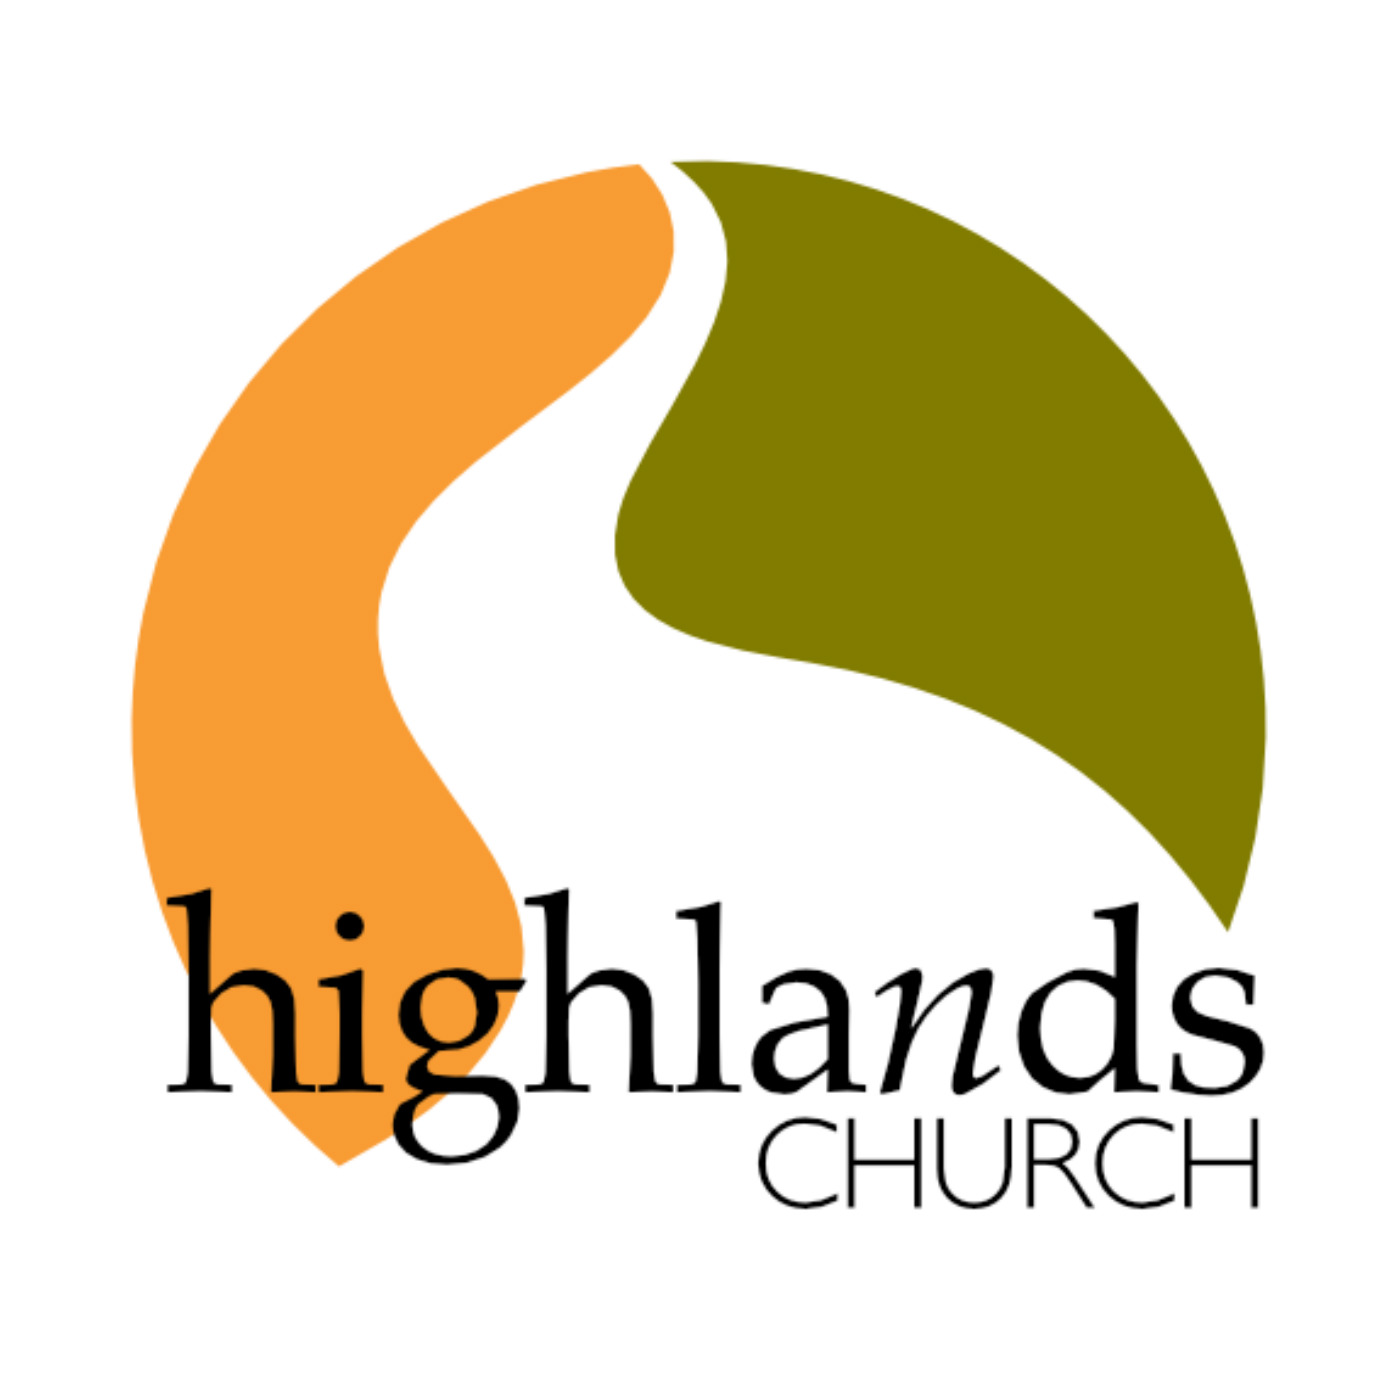 Highlands Church - Paso Robles